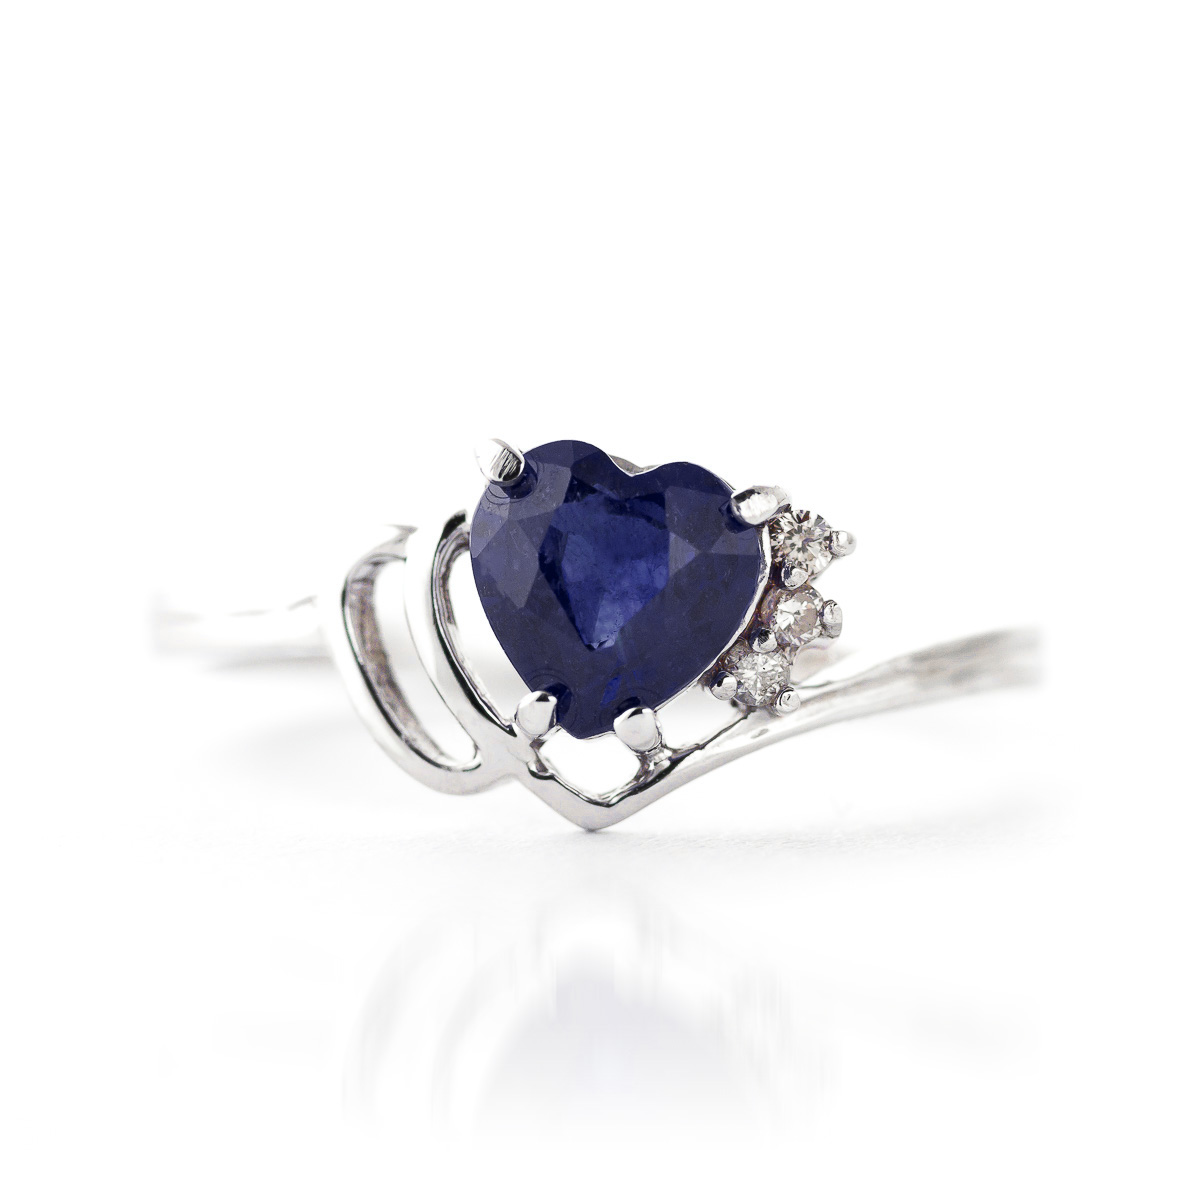 Sapphire and Diamond Devotion Ring 1.0ct in 9ct White Gold